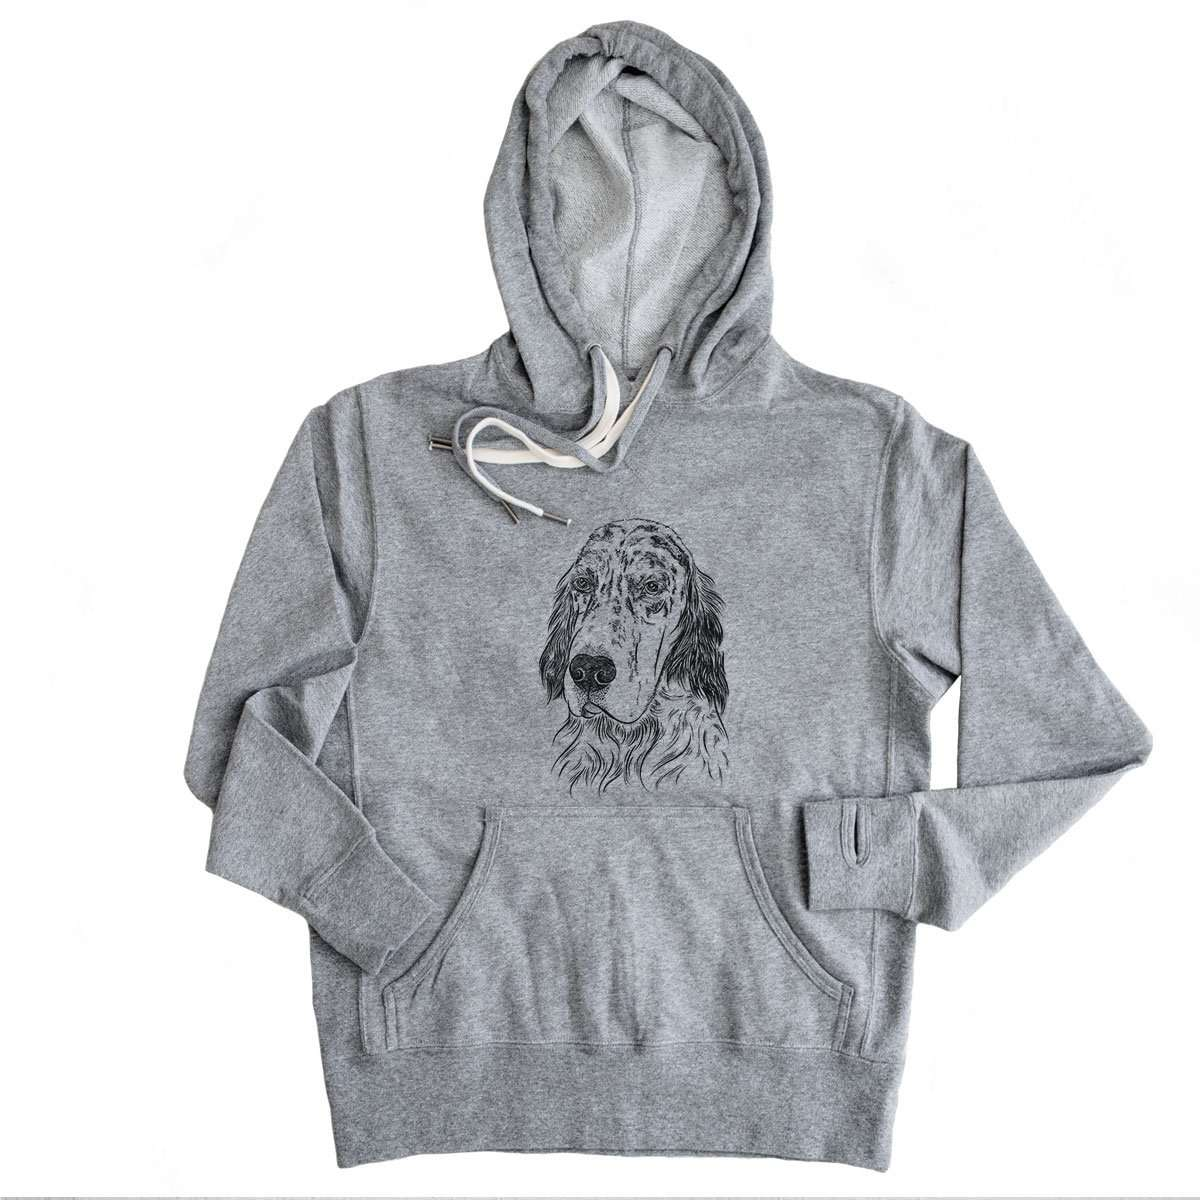 Hutch the English Setter - Grey French Terry Hooded Sweatshirt